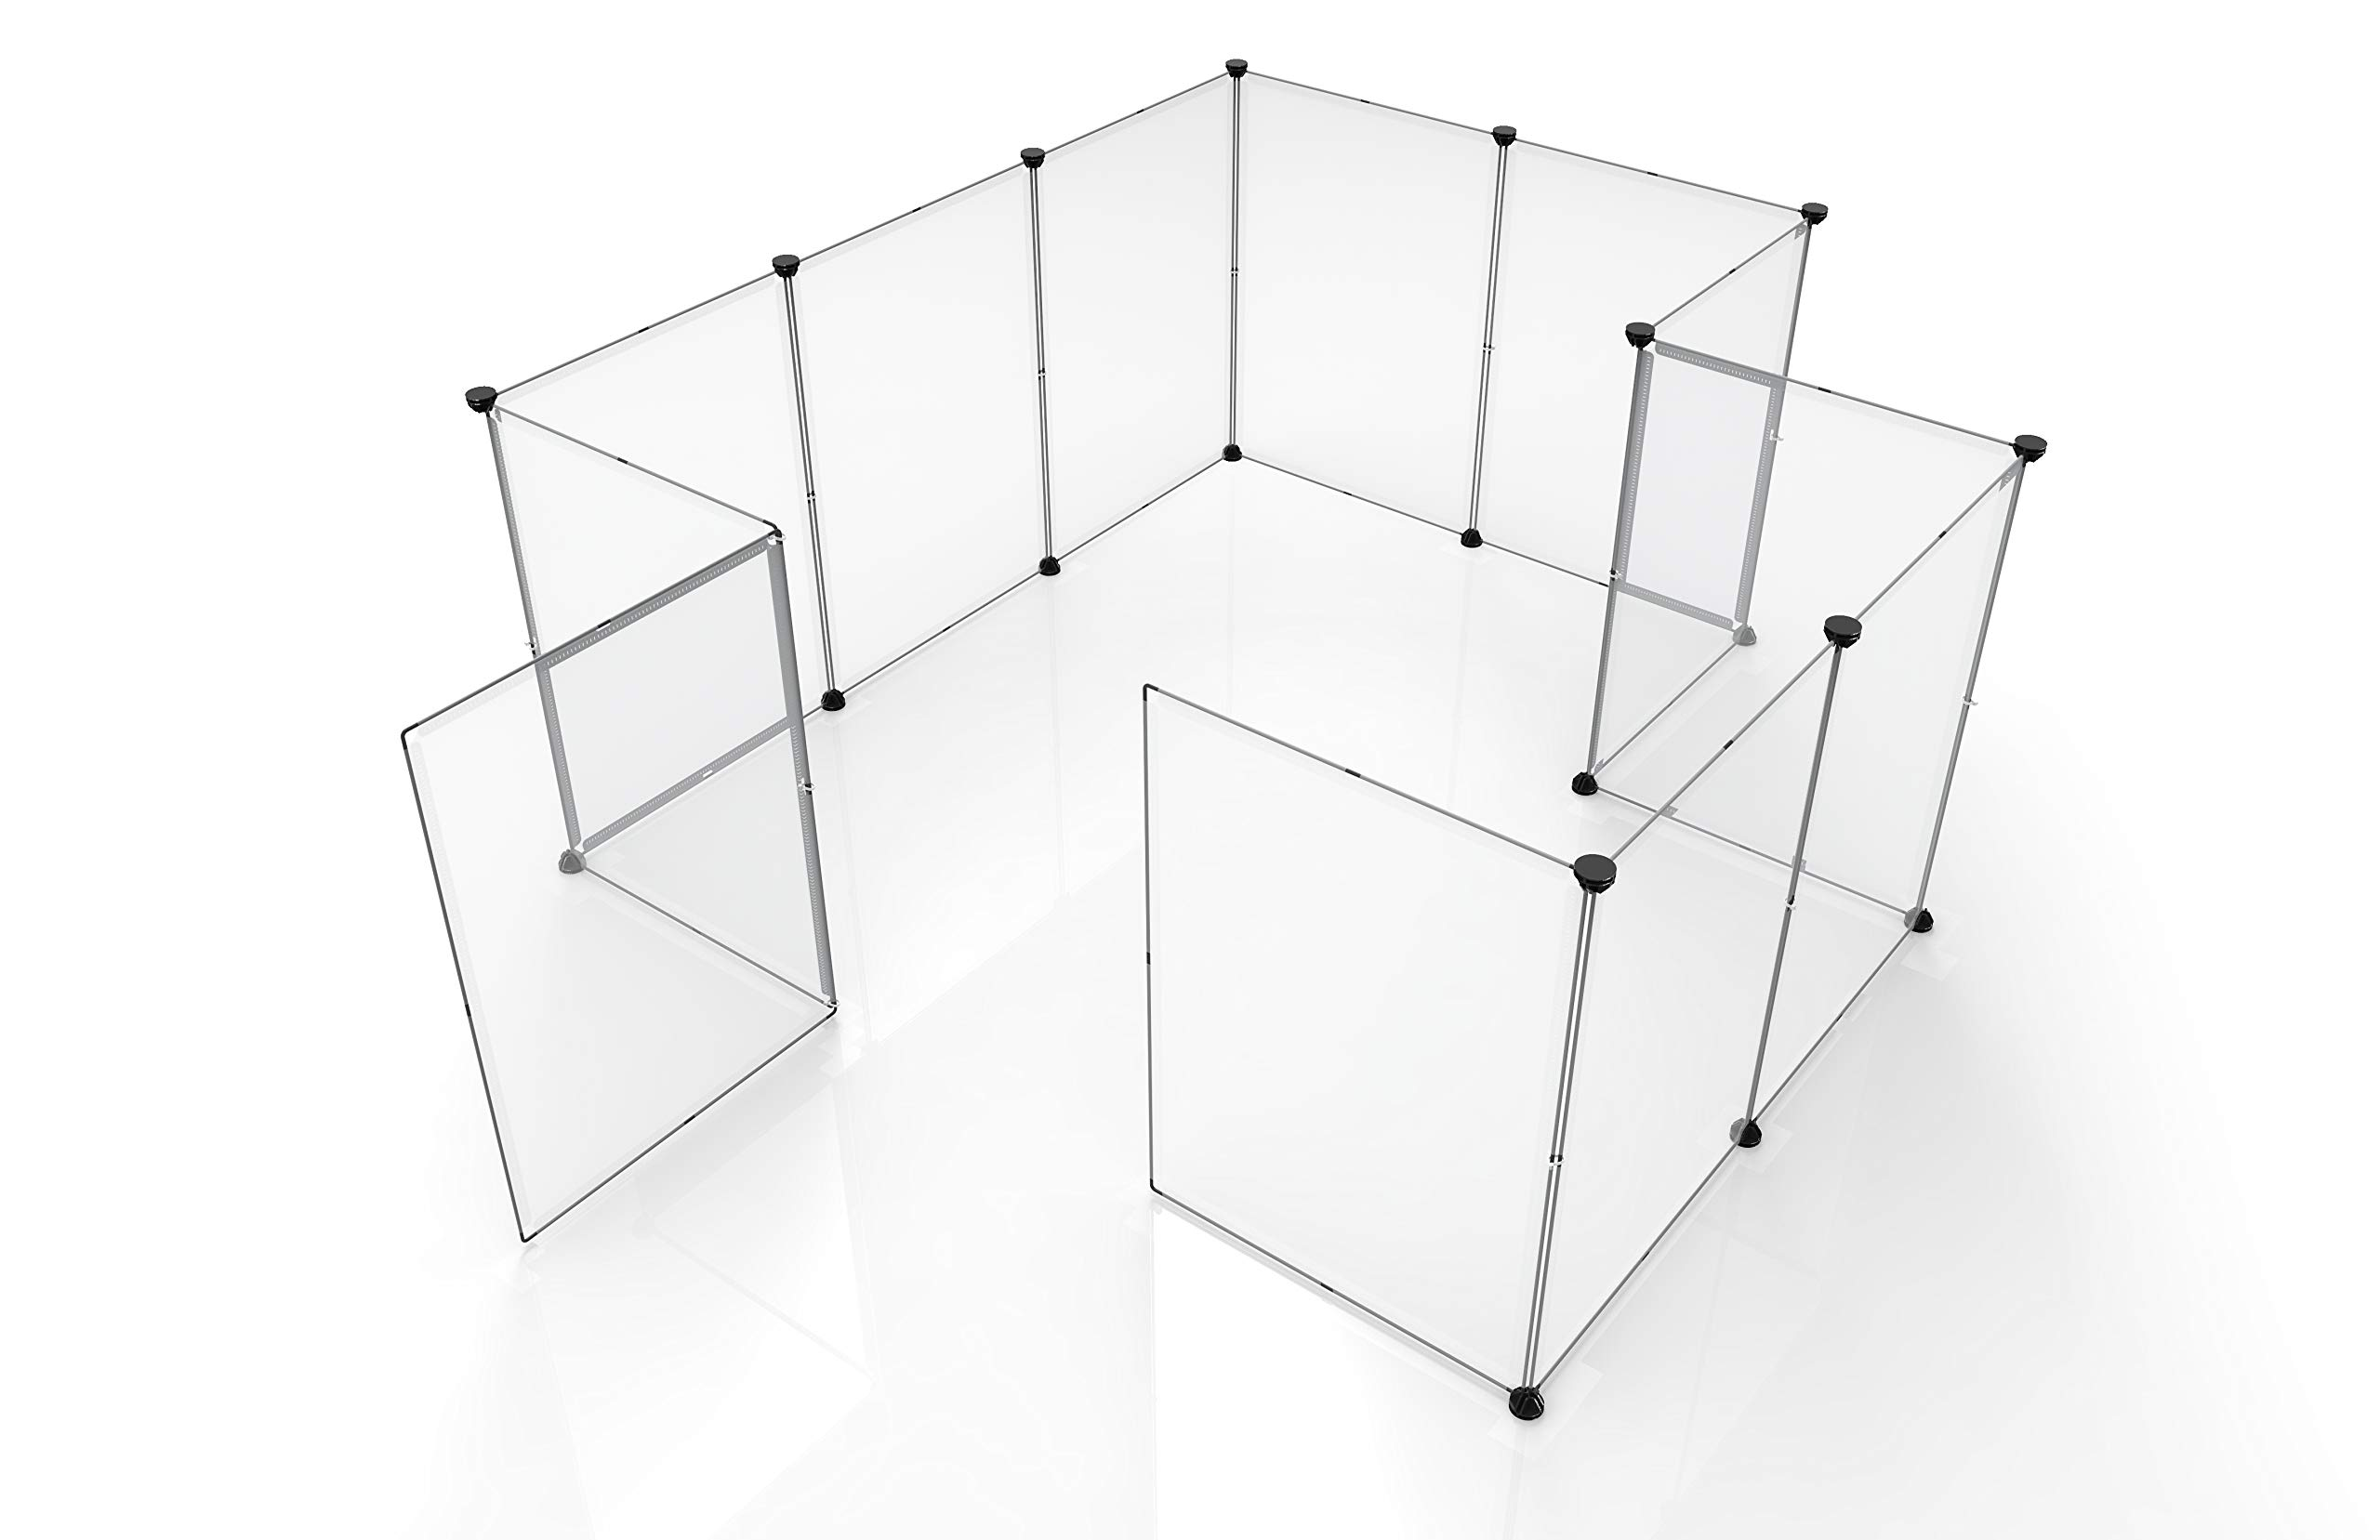 Tespo Pet Playpen, Portable Large Plastic Yard Fence Small Animals, Puppy Kennel Crate Fence Tent (Transparent White 12 Panels, 60x60x28 Inches) by Tespo